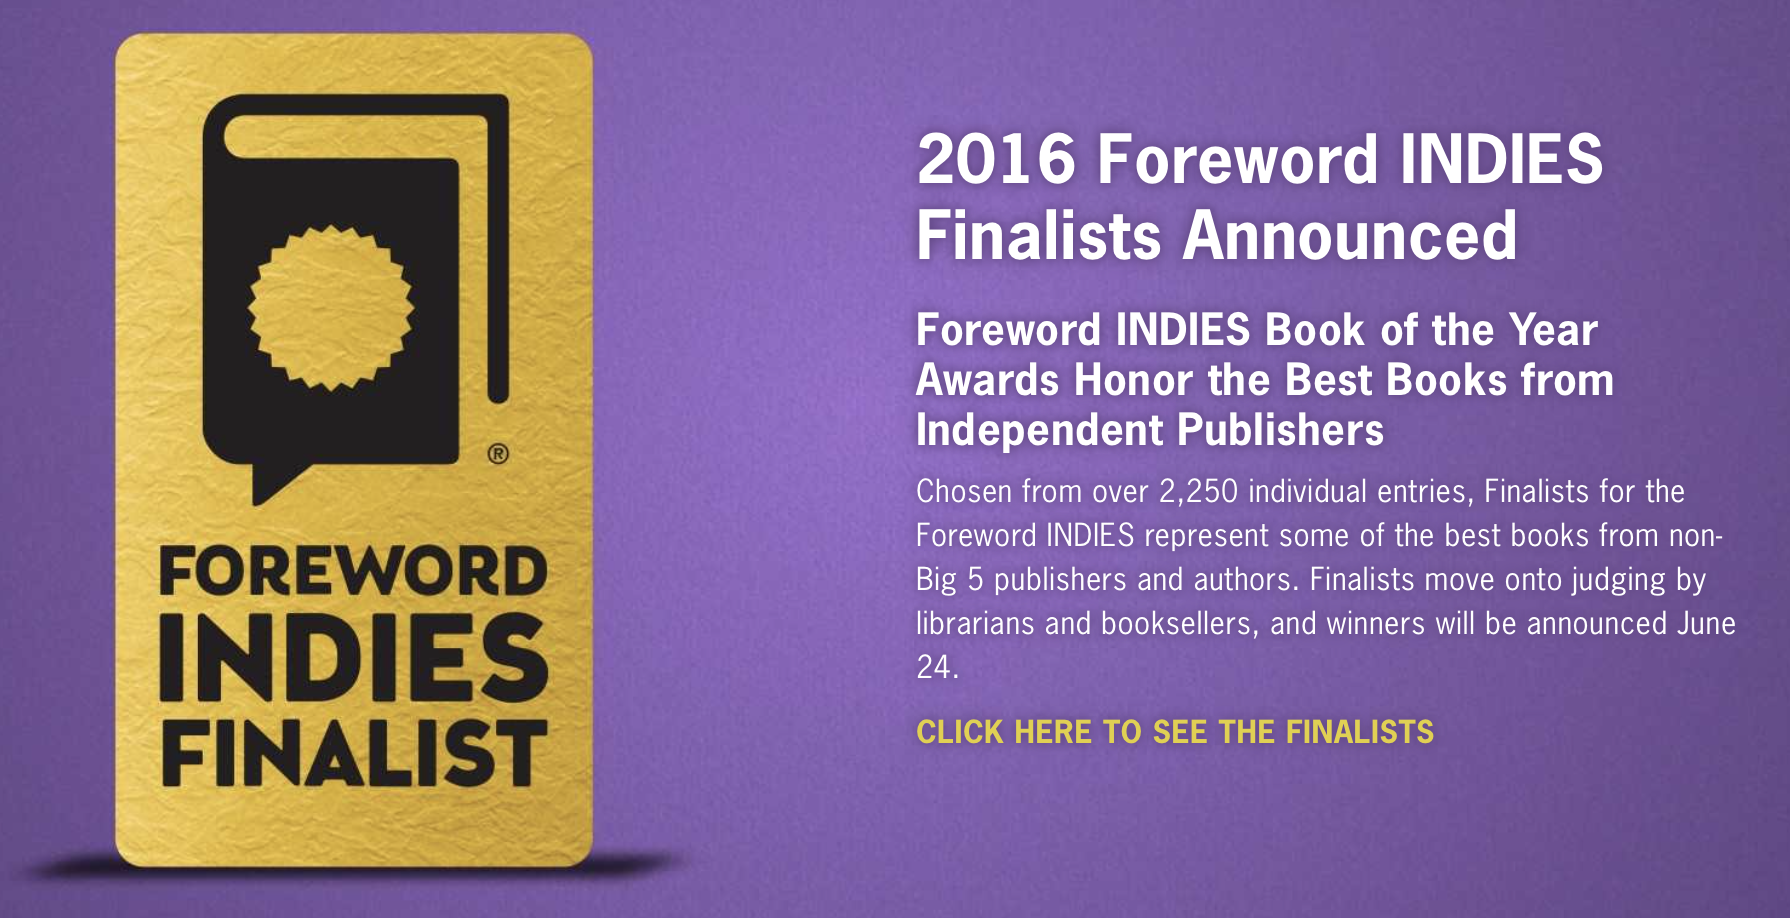 Uniting the Heavens  was selected as a  2016 Foreword INDIES finalist  in the category of Adult Fantasy.